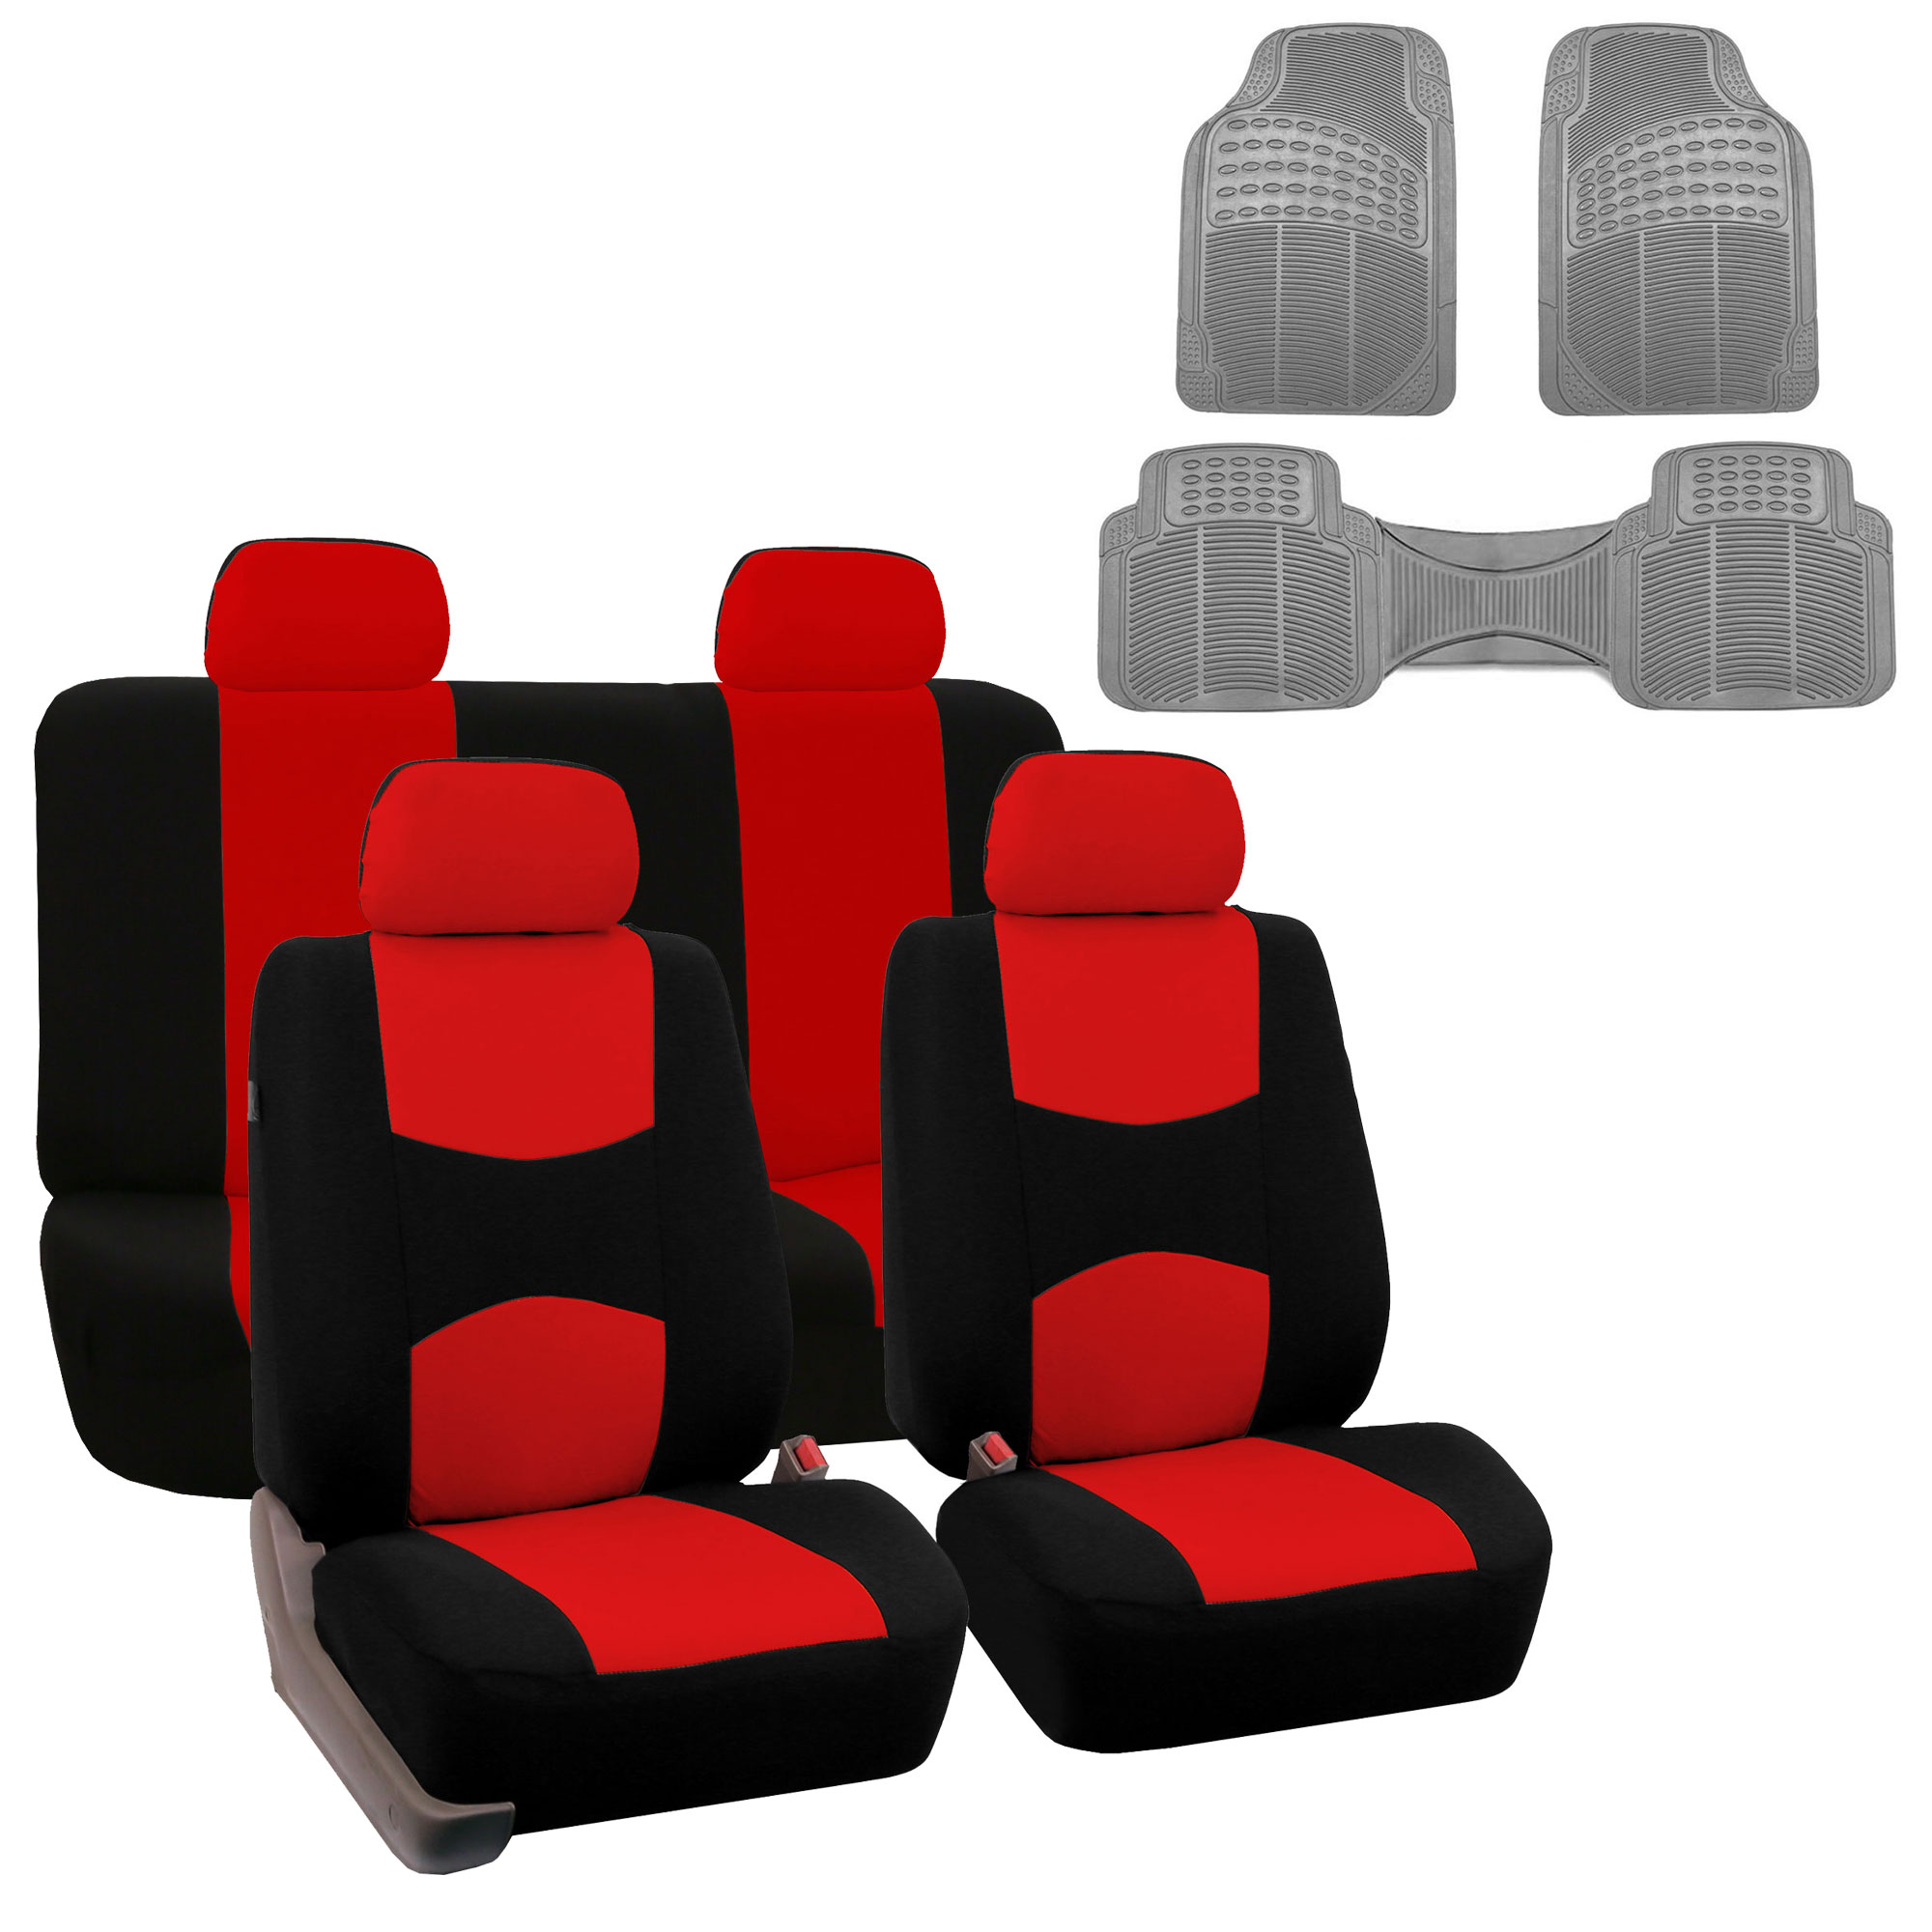 Car Seat Cover Full Set For For Auto Car SUV Truck Van w/ Floor Mat Red